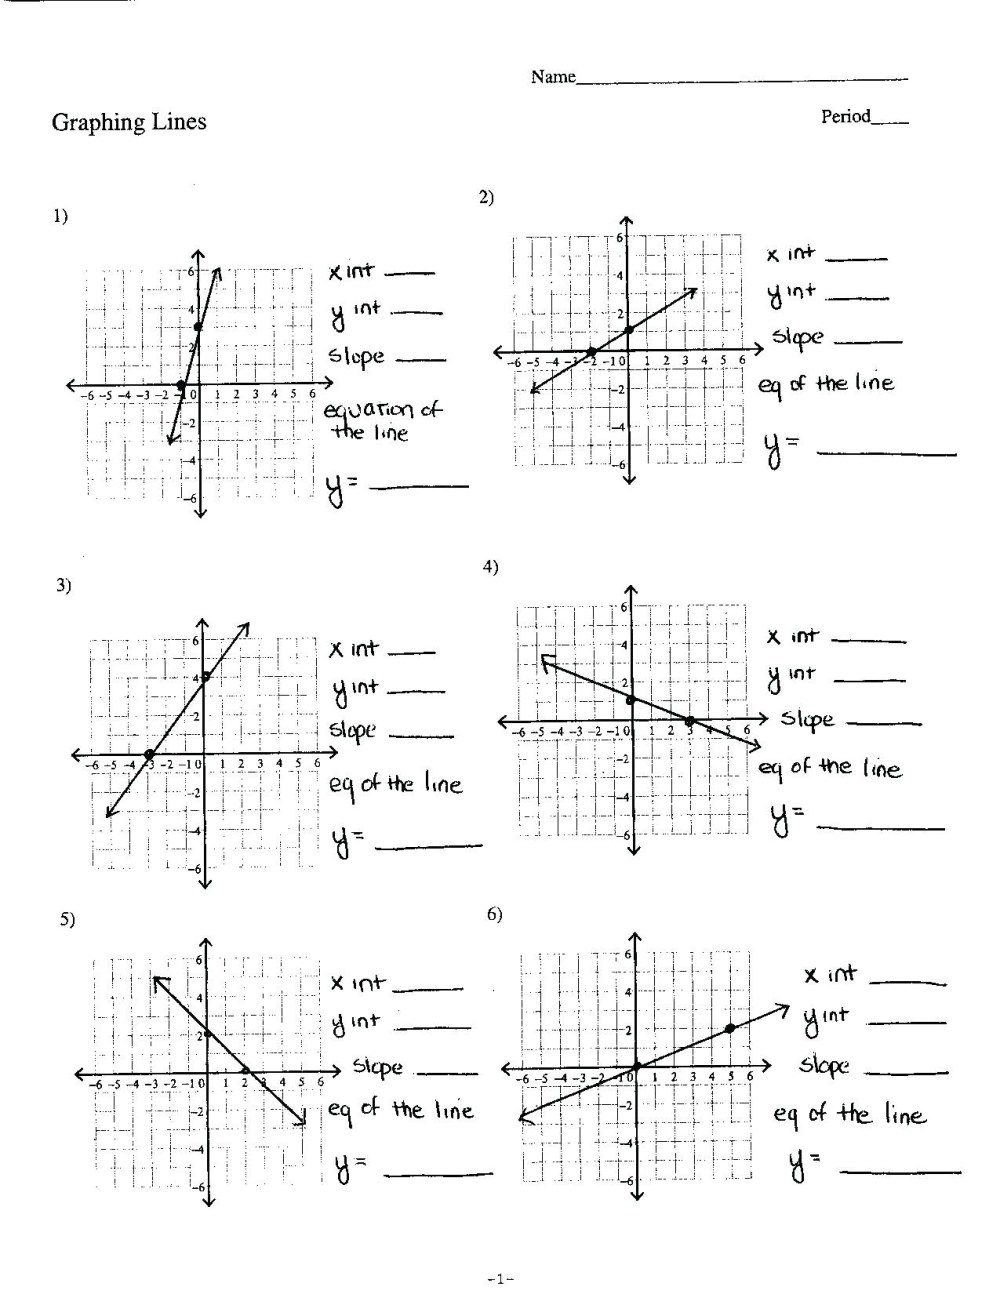 medium resolution of Graphing Linear Equations Worksheet Free   Printable Worksheets and  Activities for Teachers